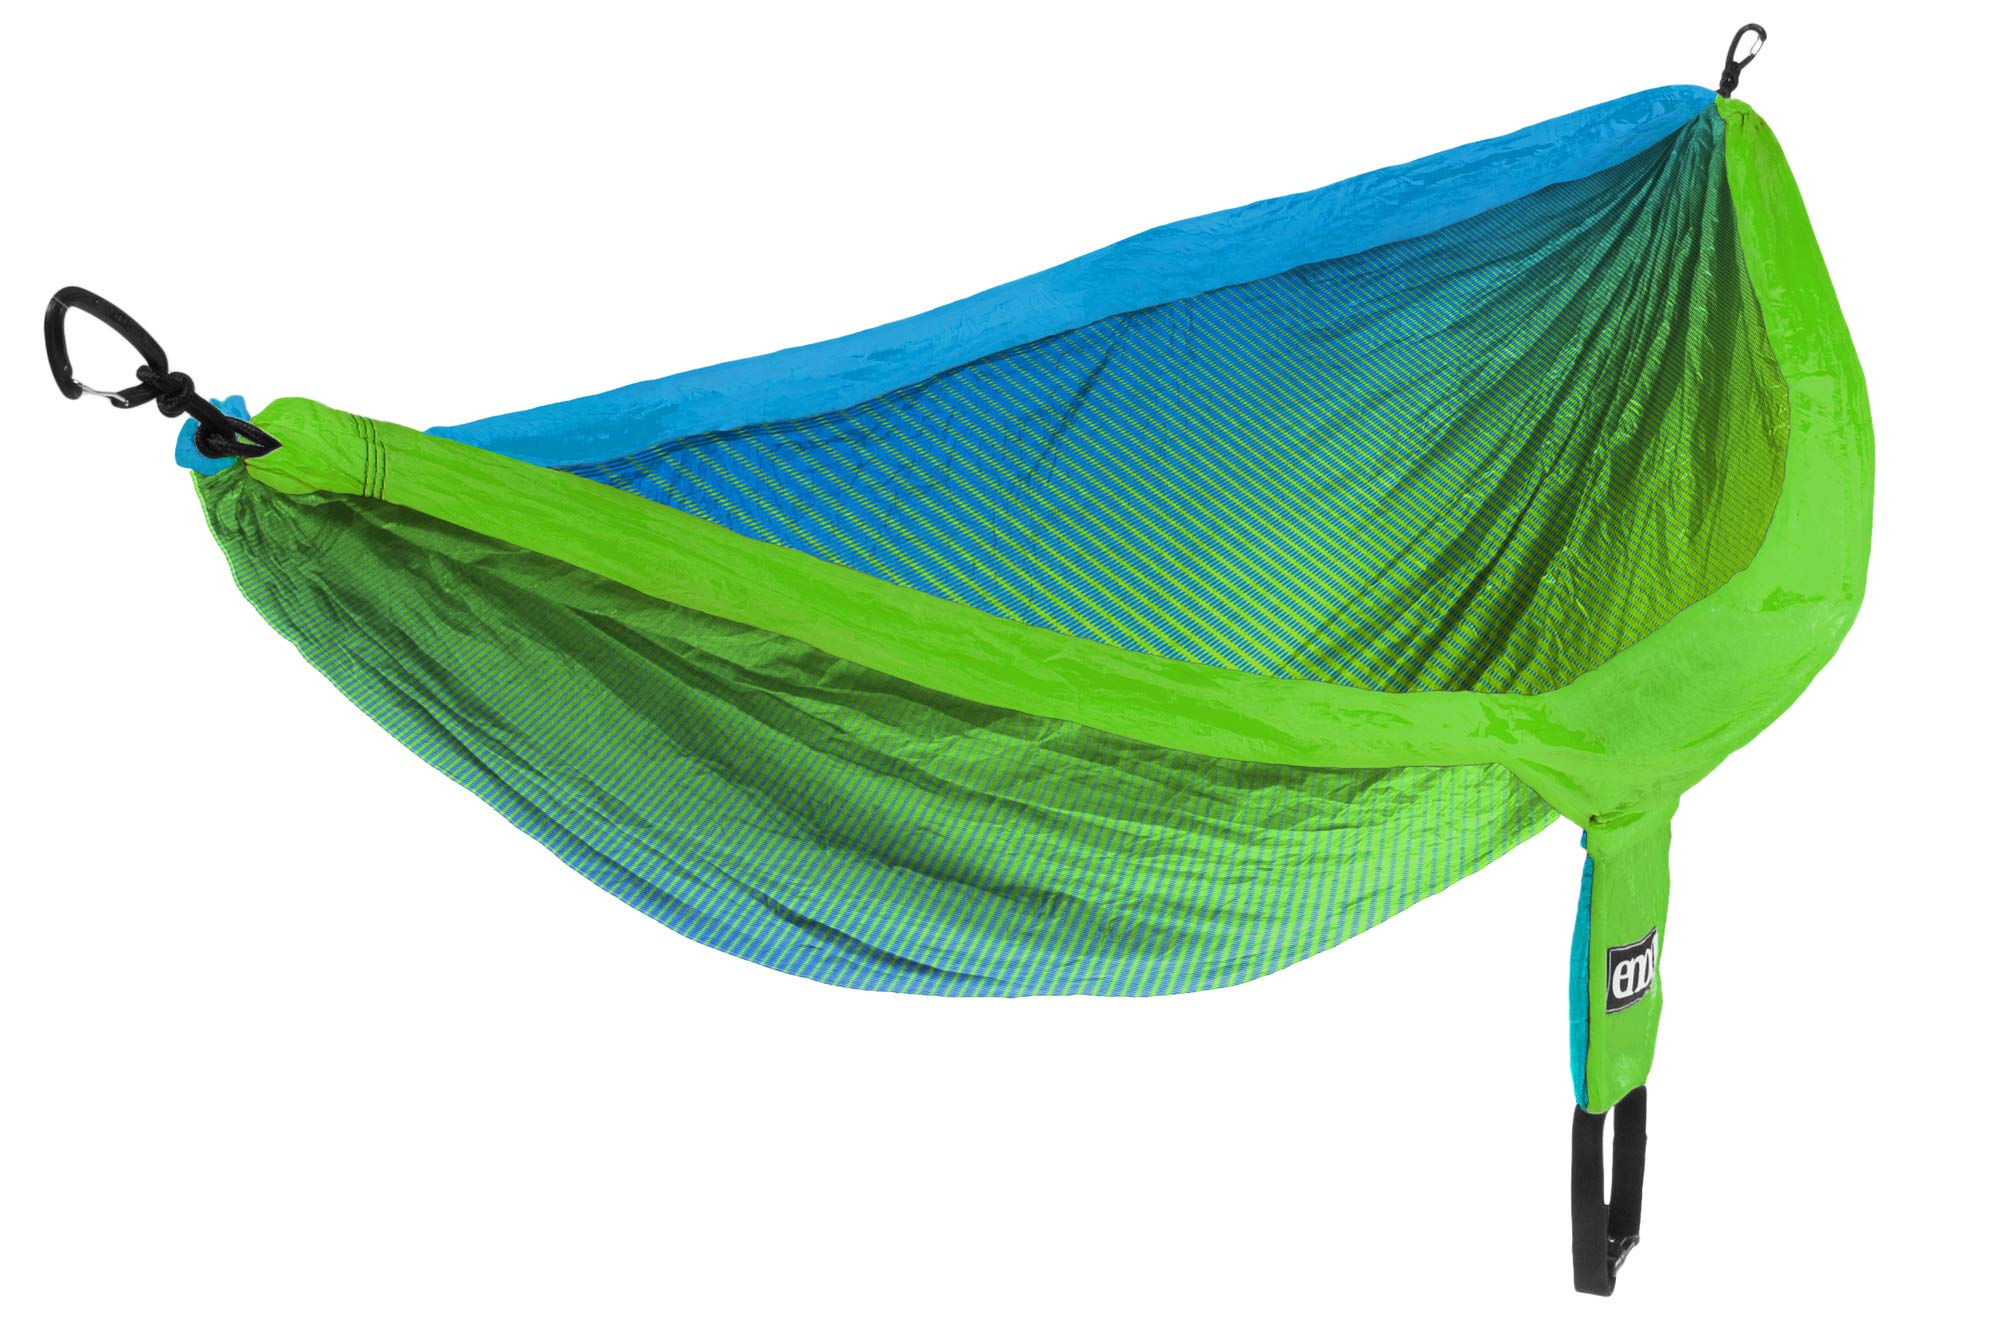 ENO - Eagles Nest Outfitters DoubleNest Print Portable Hammock for Two, Fade Teal/Chartreuse by ENO